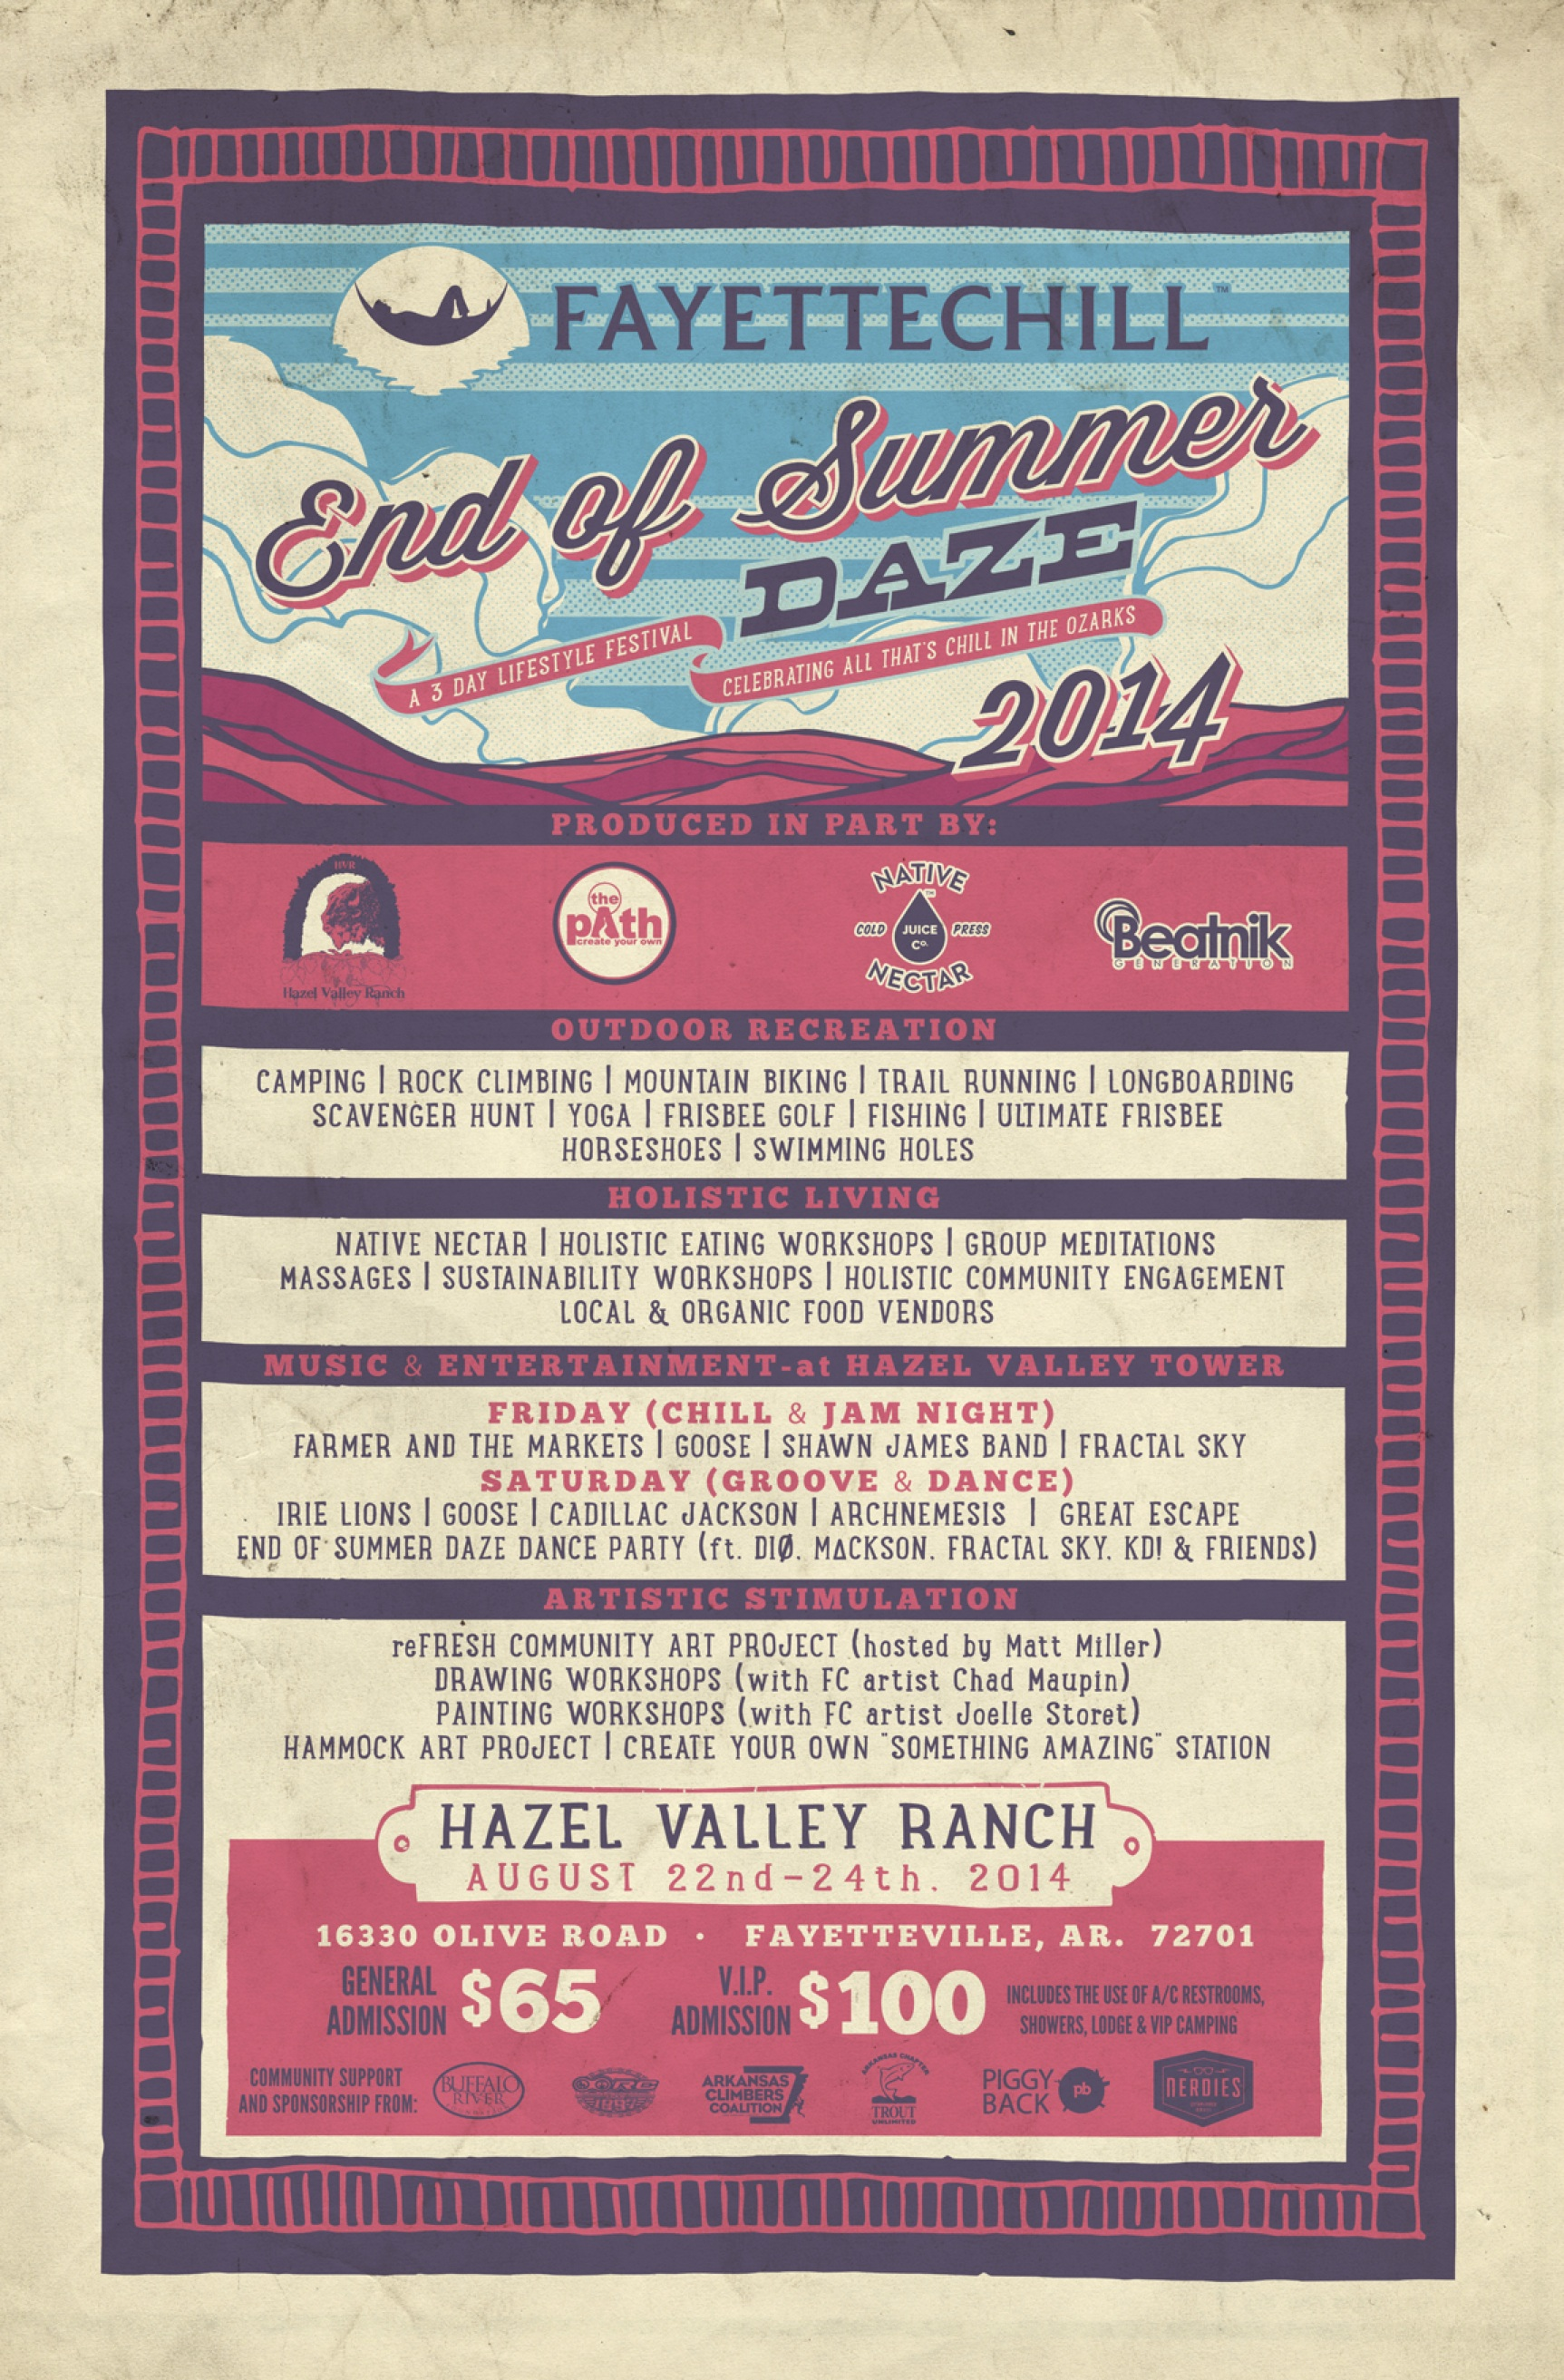 End of Summer Daze lifestyle festival